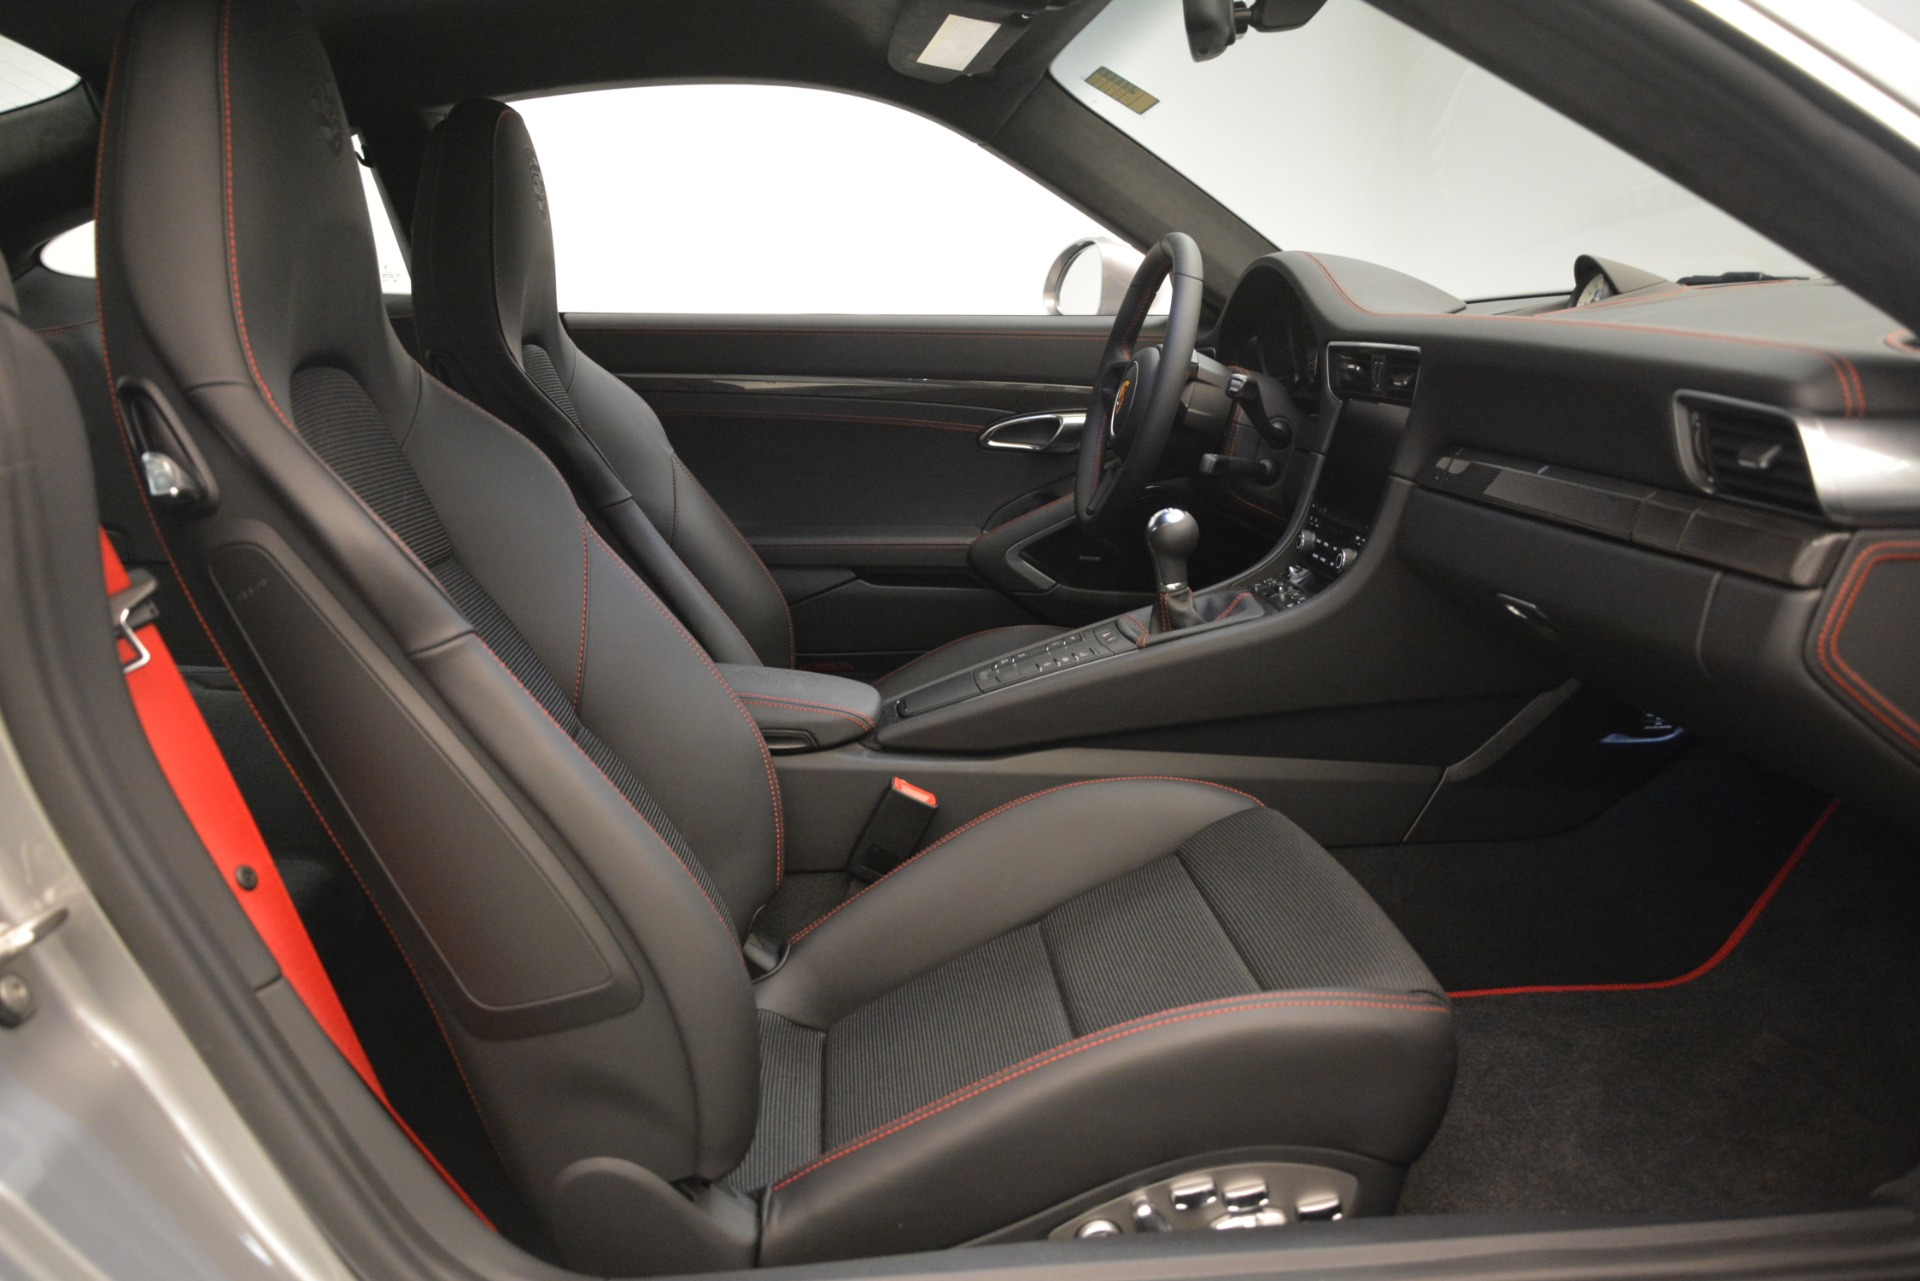 Used 2018 Porsche 911 GT3 For Sale In Greenwich, CT 3255_p20